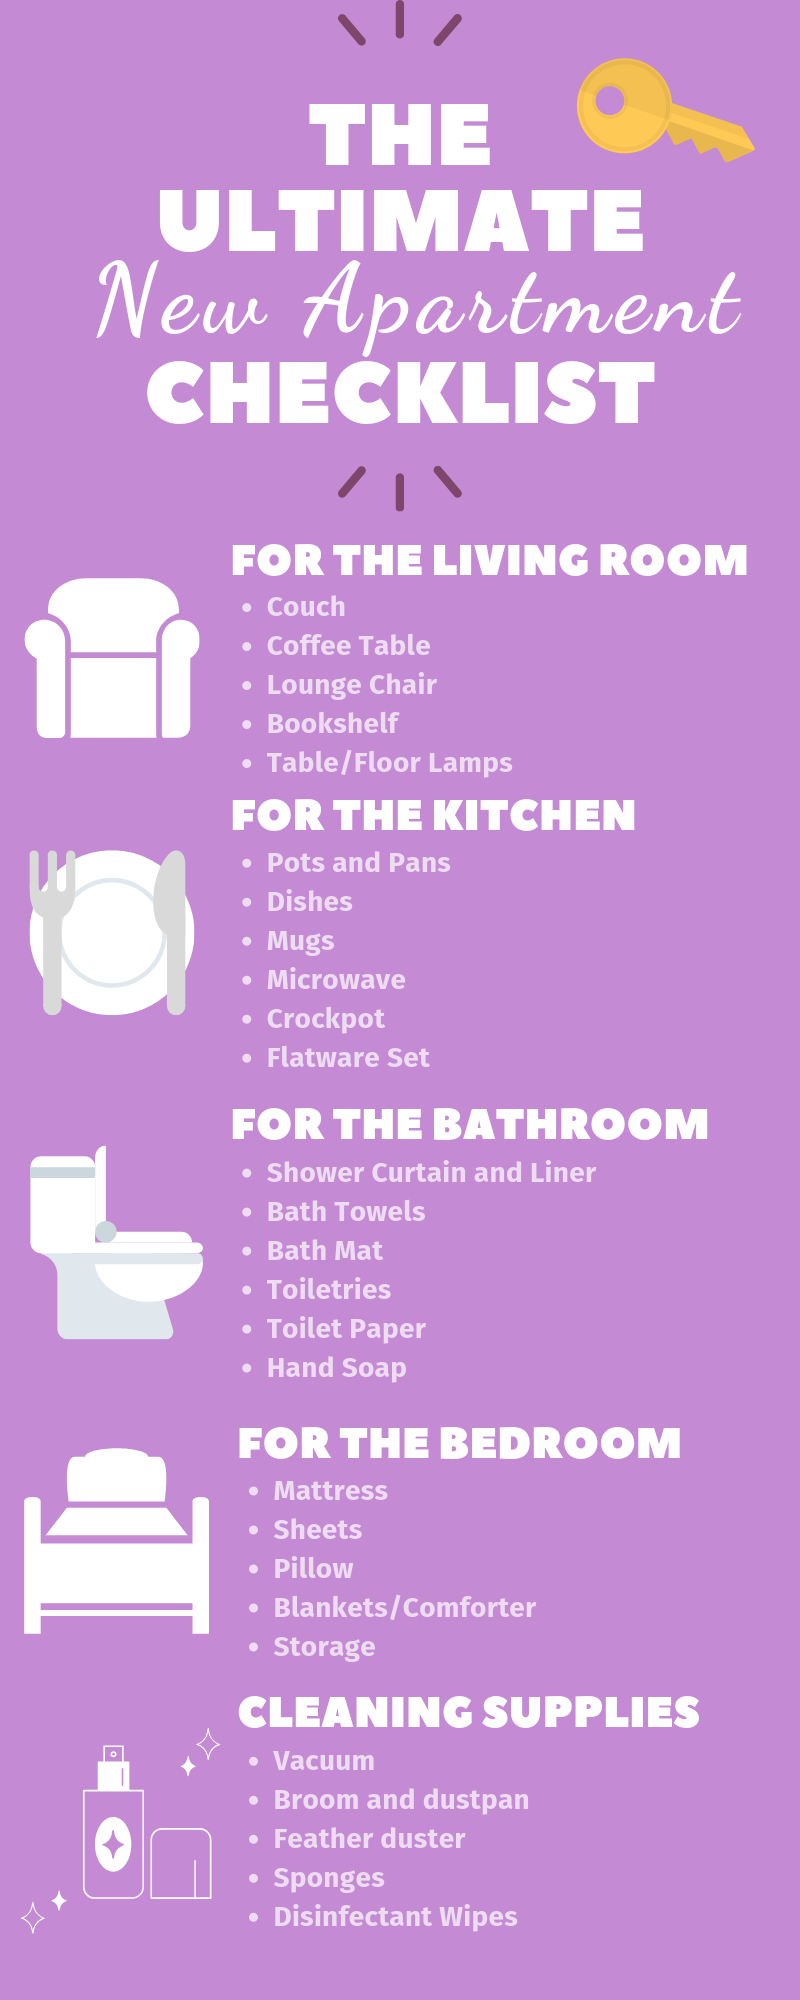 Roommate Tips: The Ultimate New Apartment Checklist